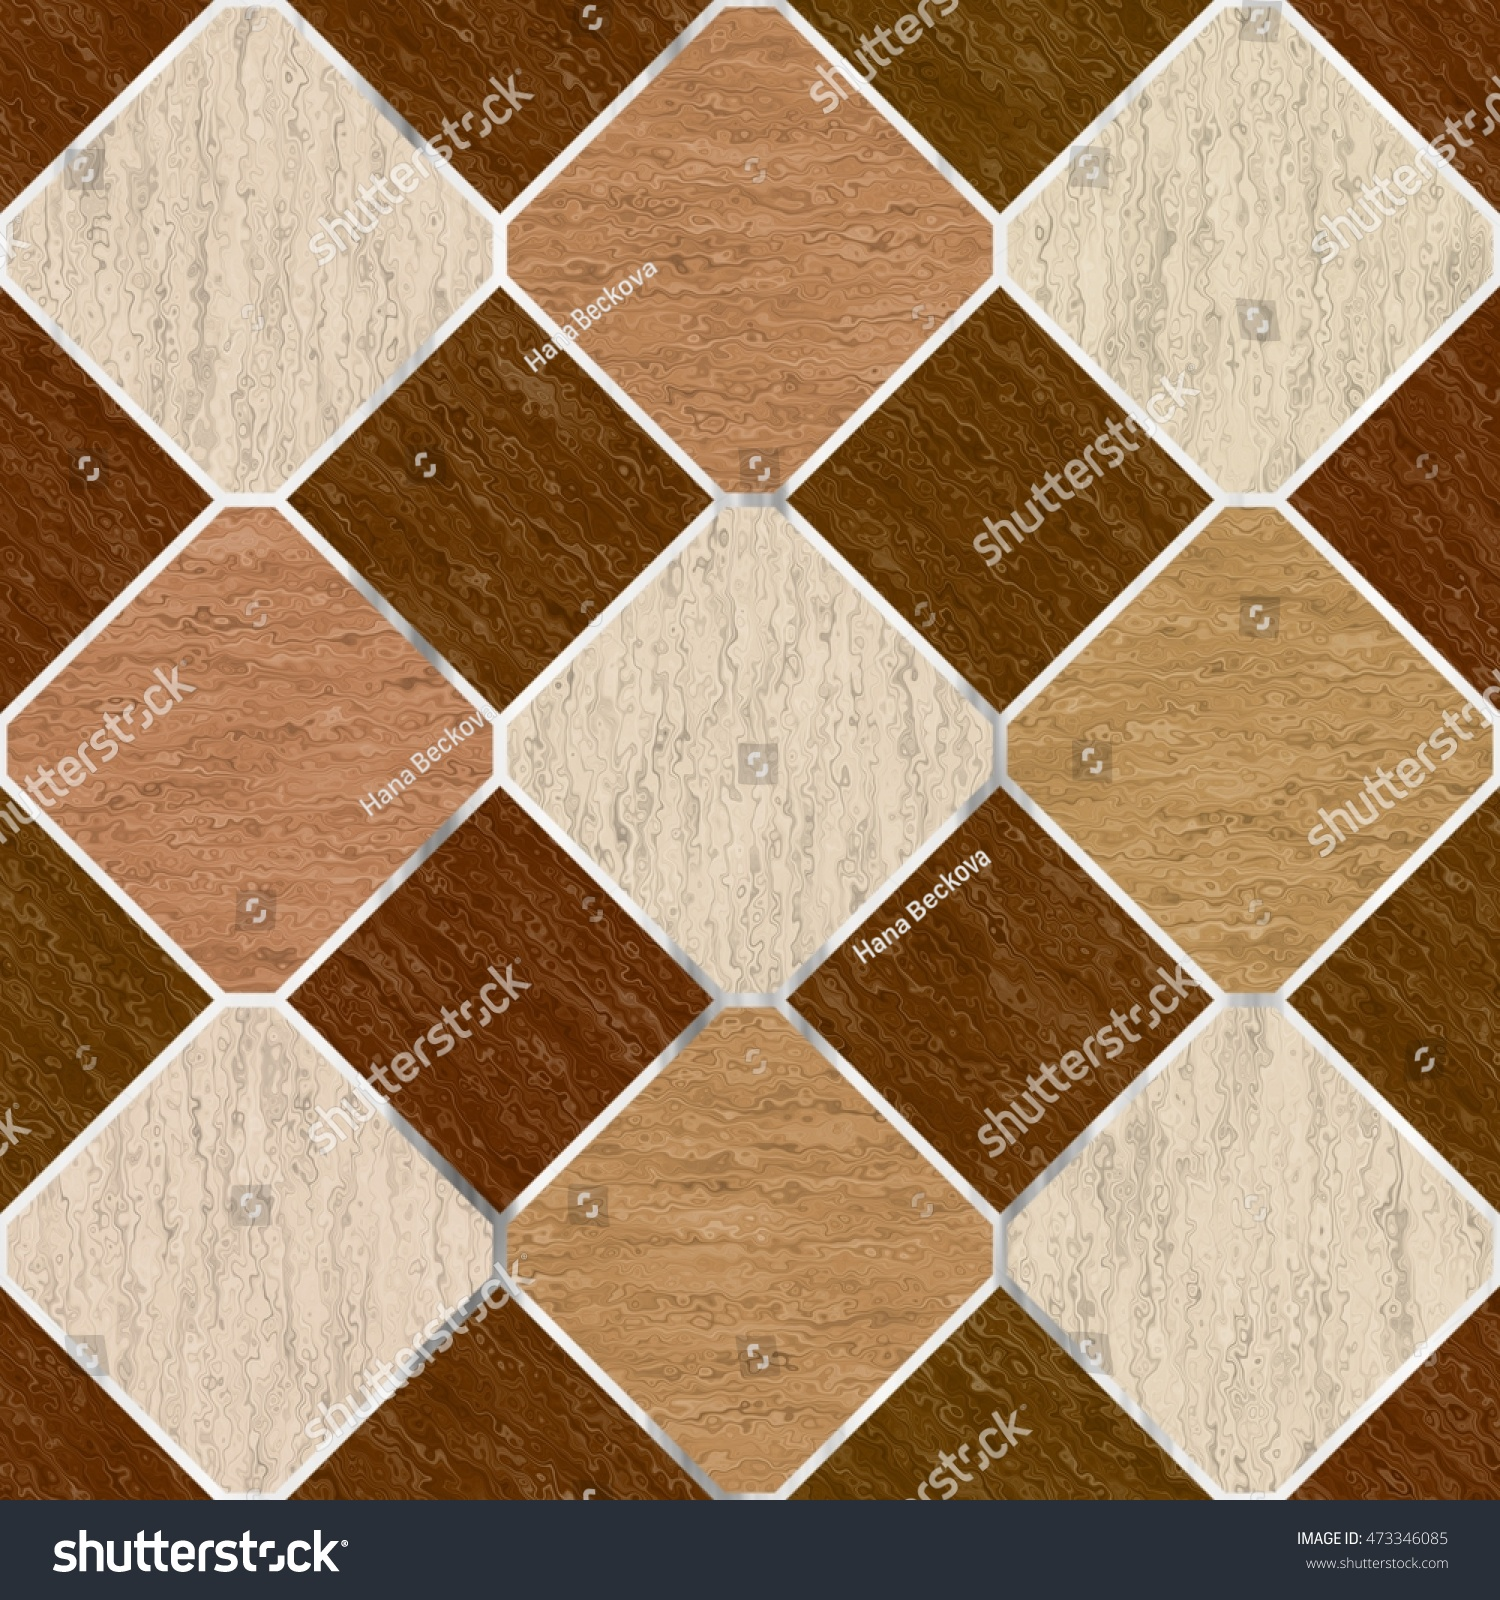 Royalty Free Stock Illustration Of Brown Synthetic Floor Tiles